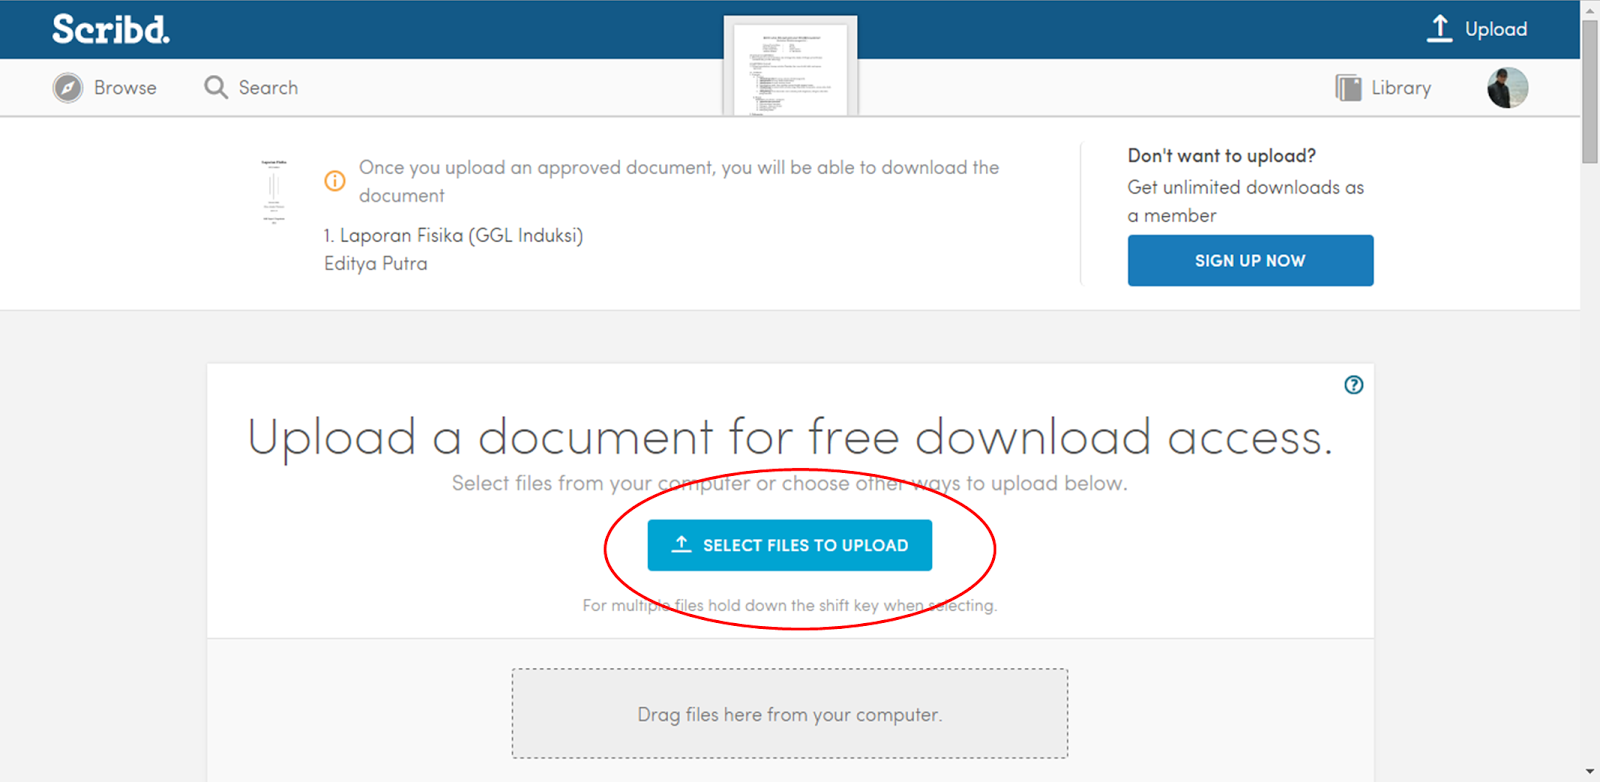 how to download files in scribd for free